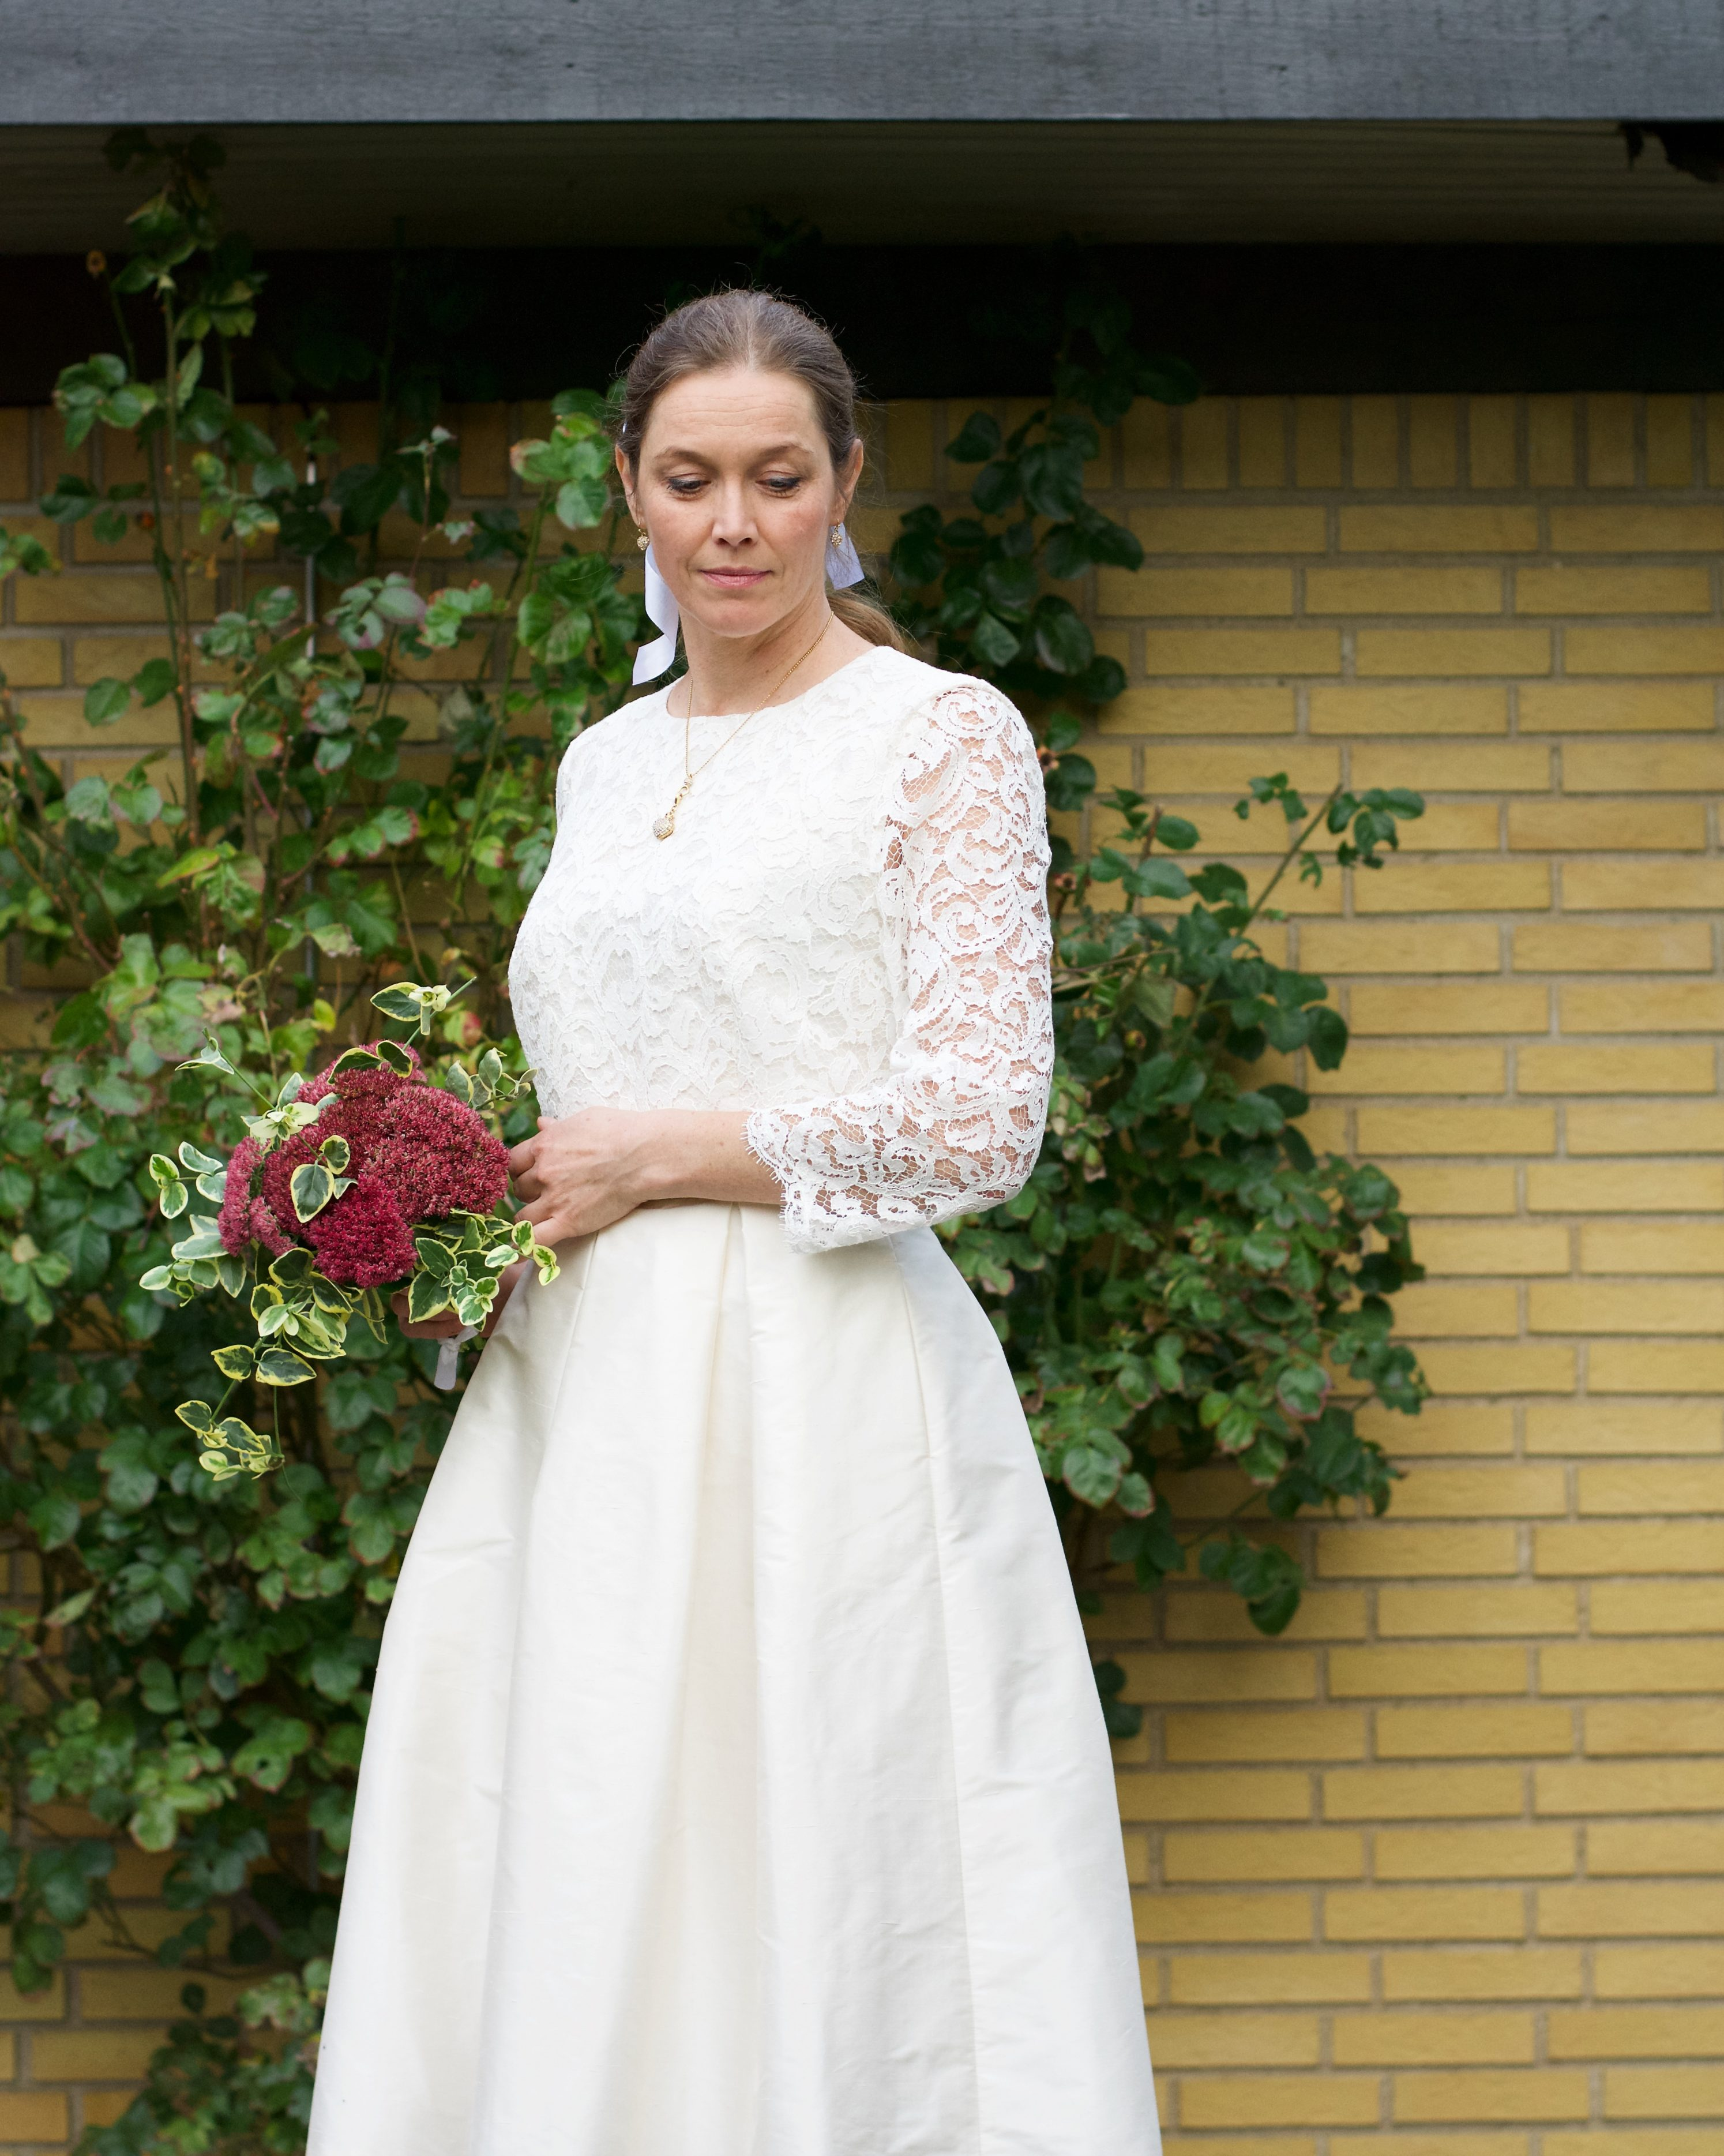 Make your own vintage inspired wedding dress from a regular dress pattern.